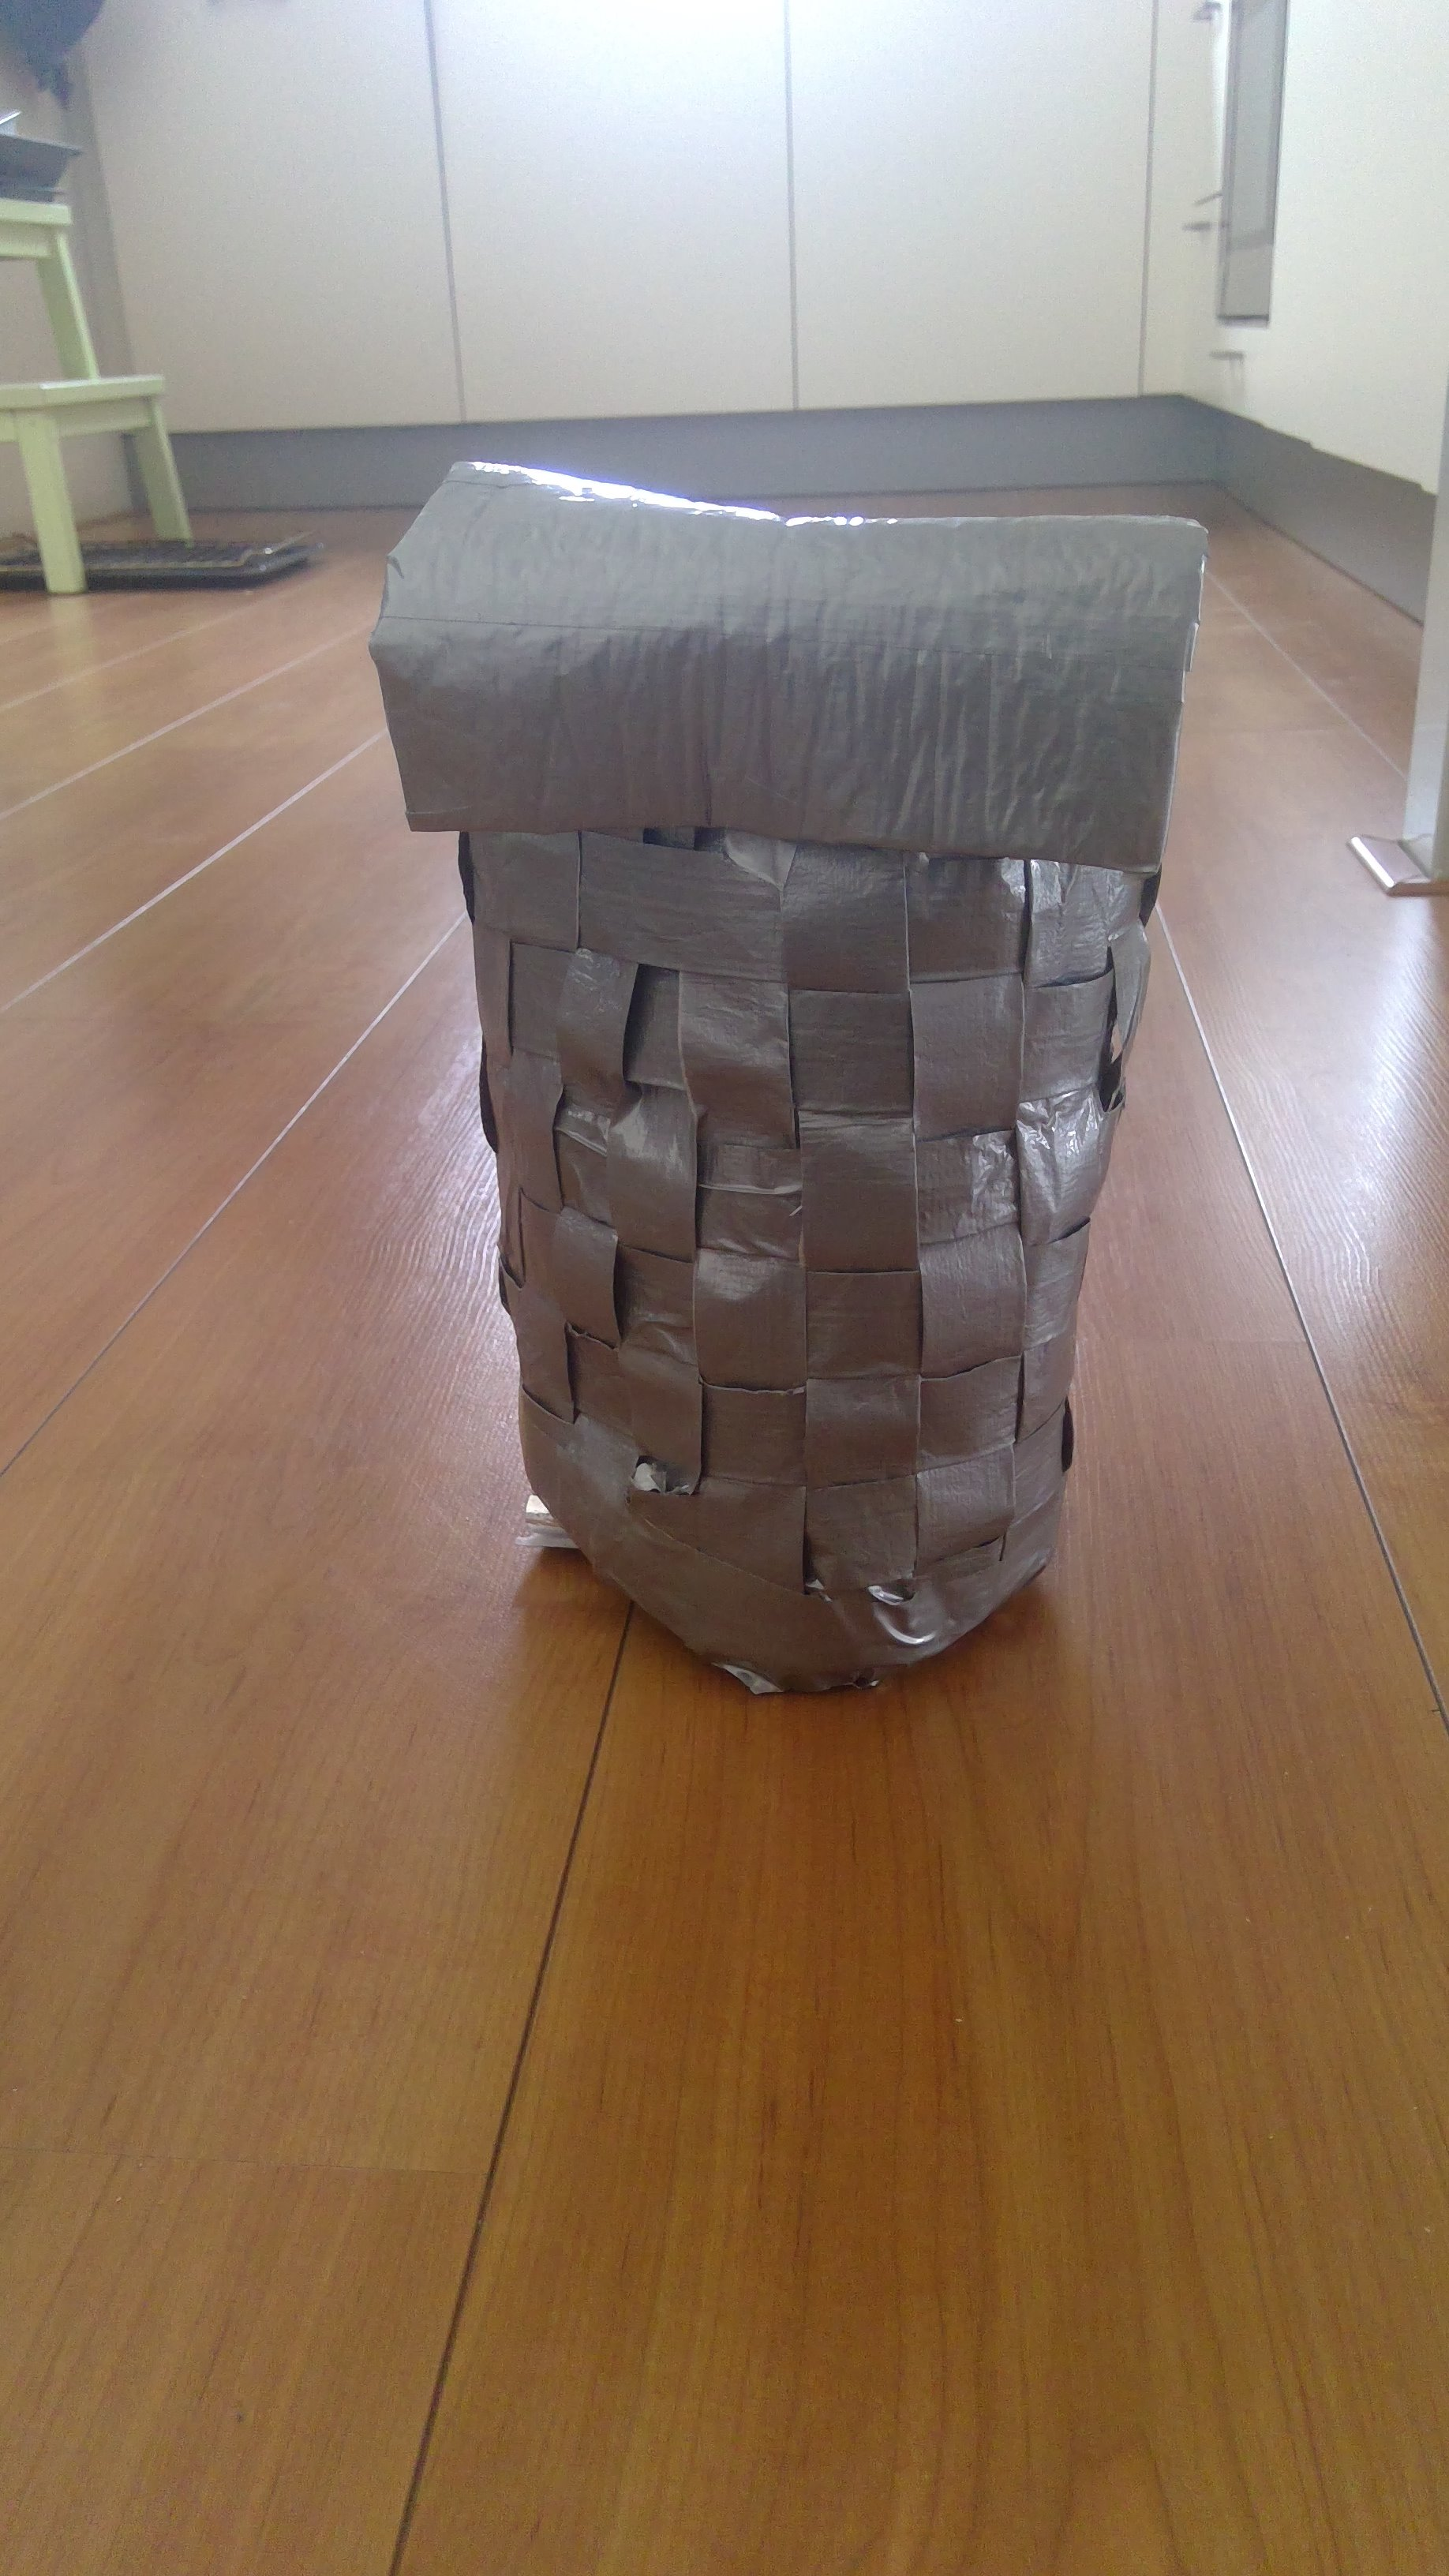 Picture of Duct-tape Cooling Bag